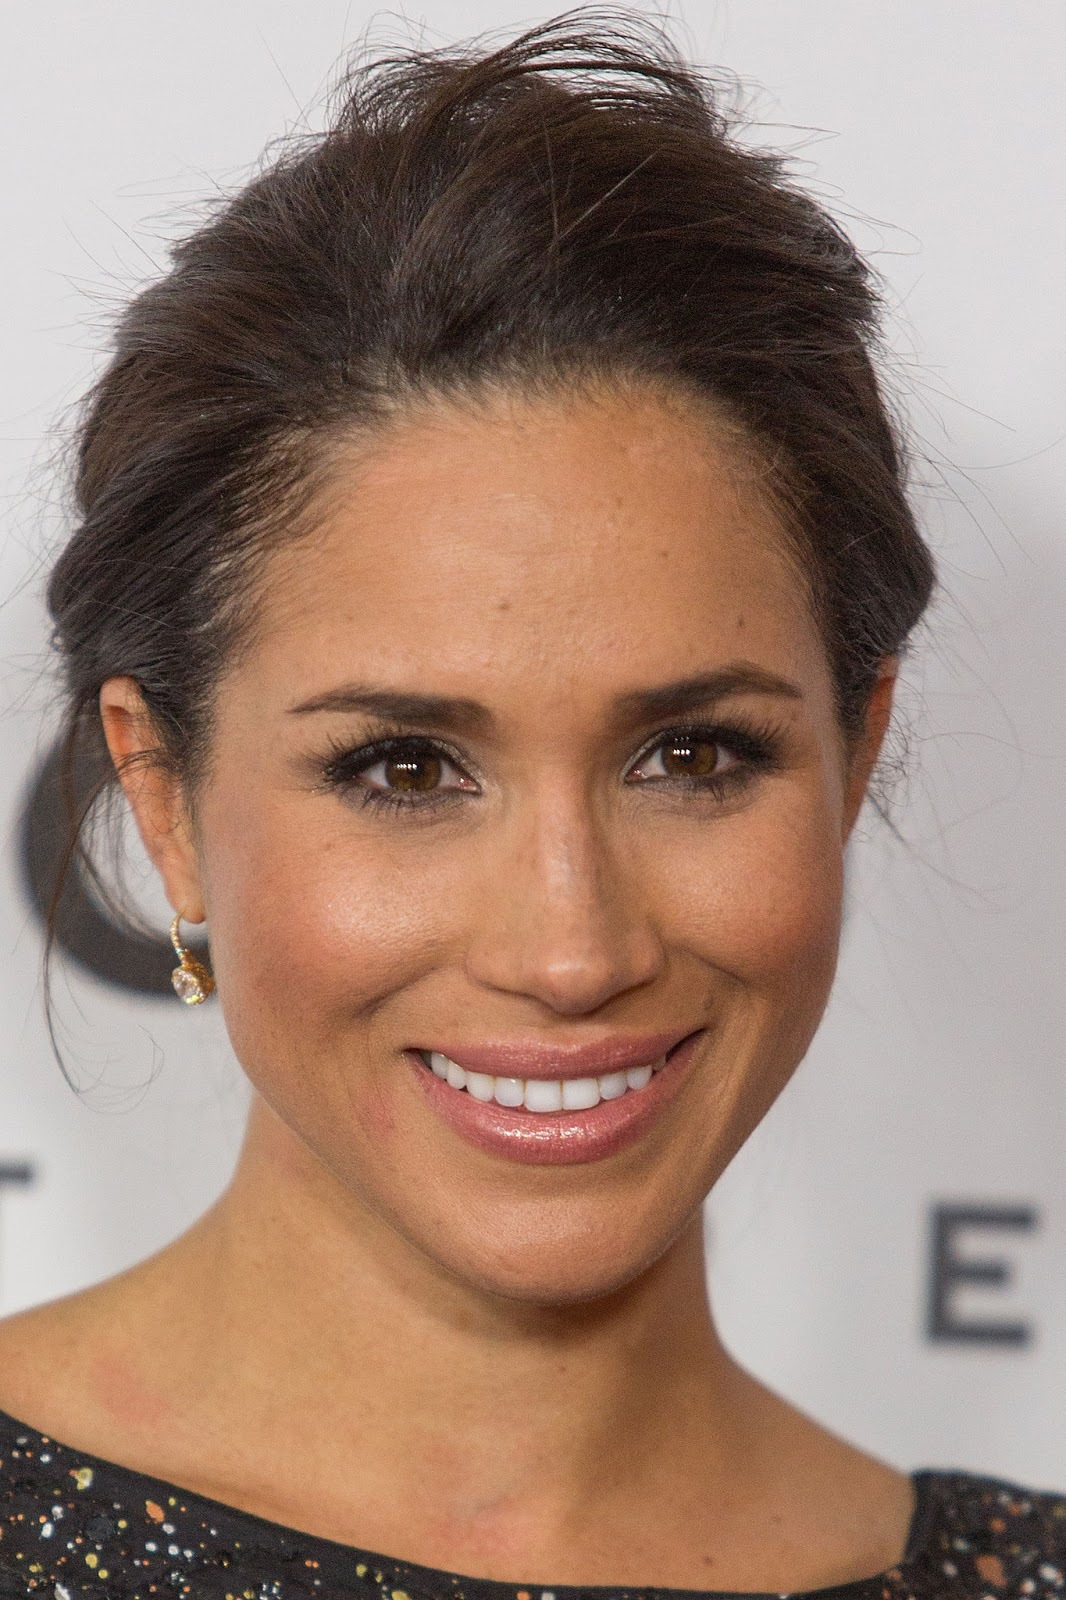 Meghan Markle High Quality Wallpapers For Iphone